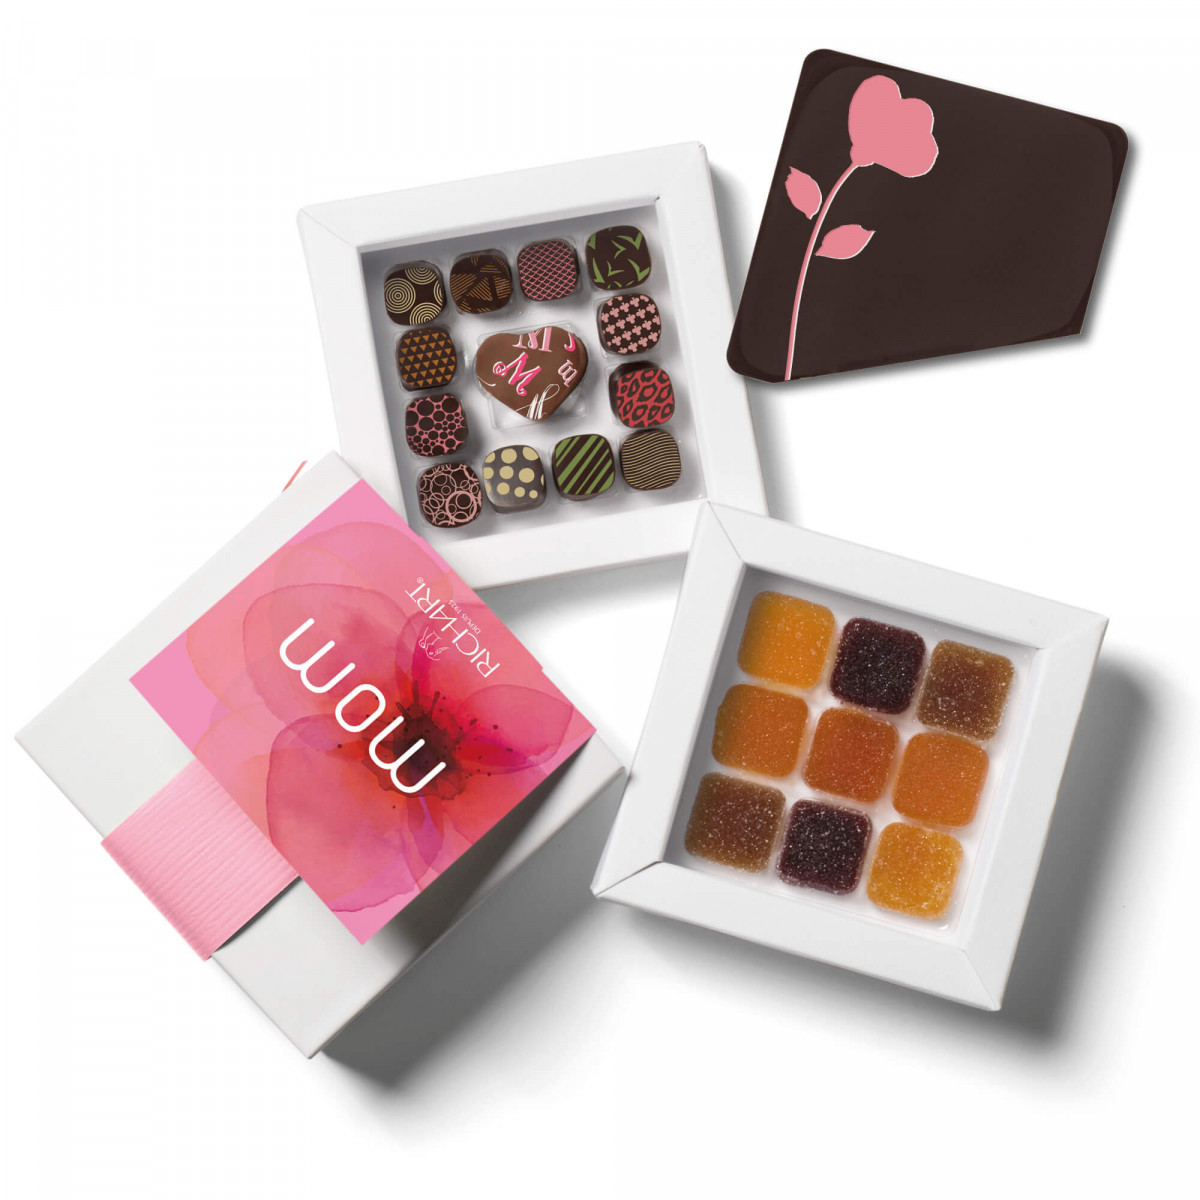 Tenderness chocolate gift box| RICHART